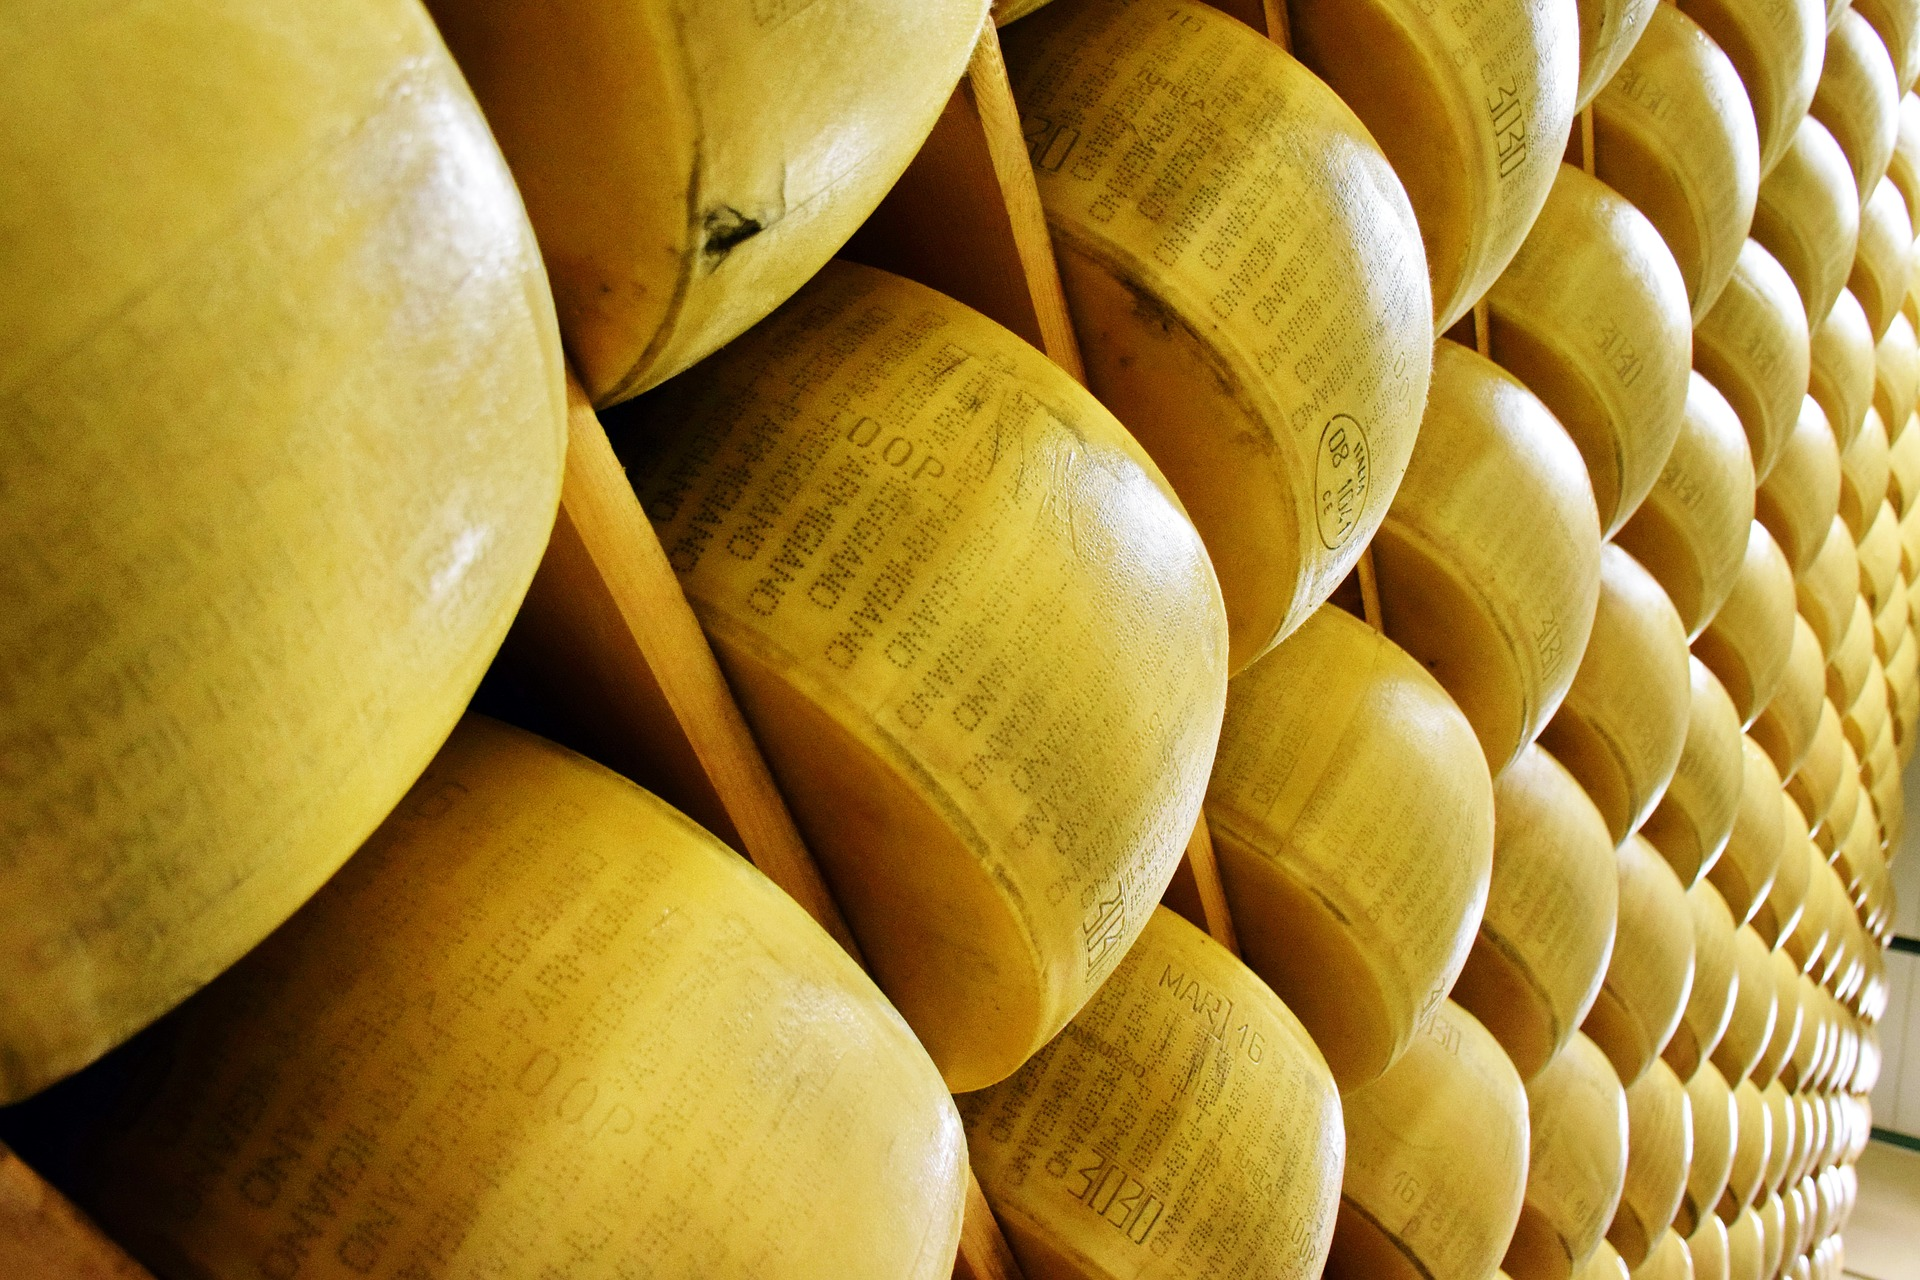 Cheese wheels made near our luxury hotels, Umbria.